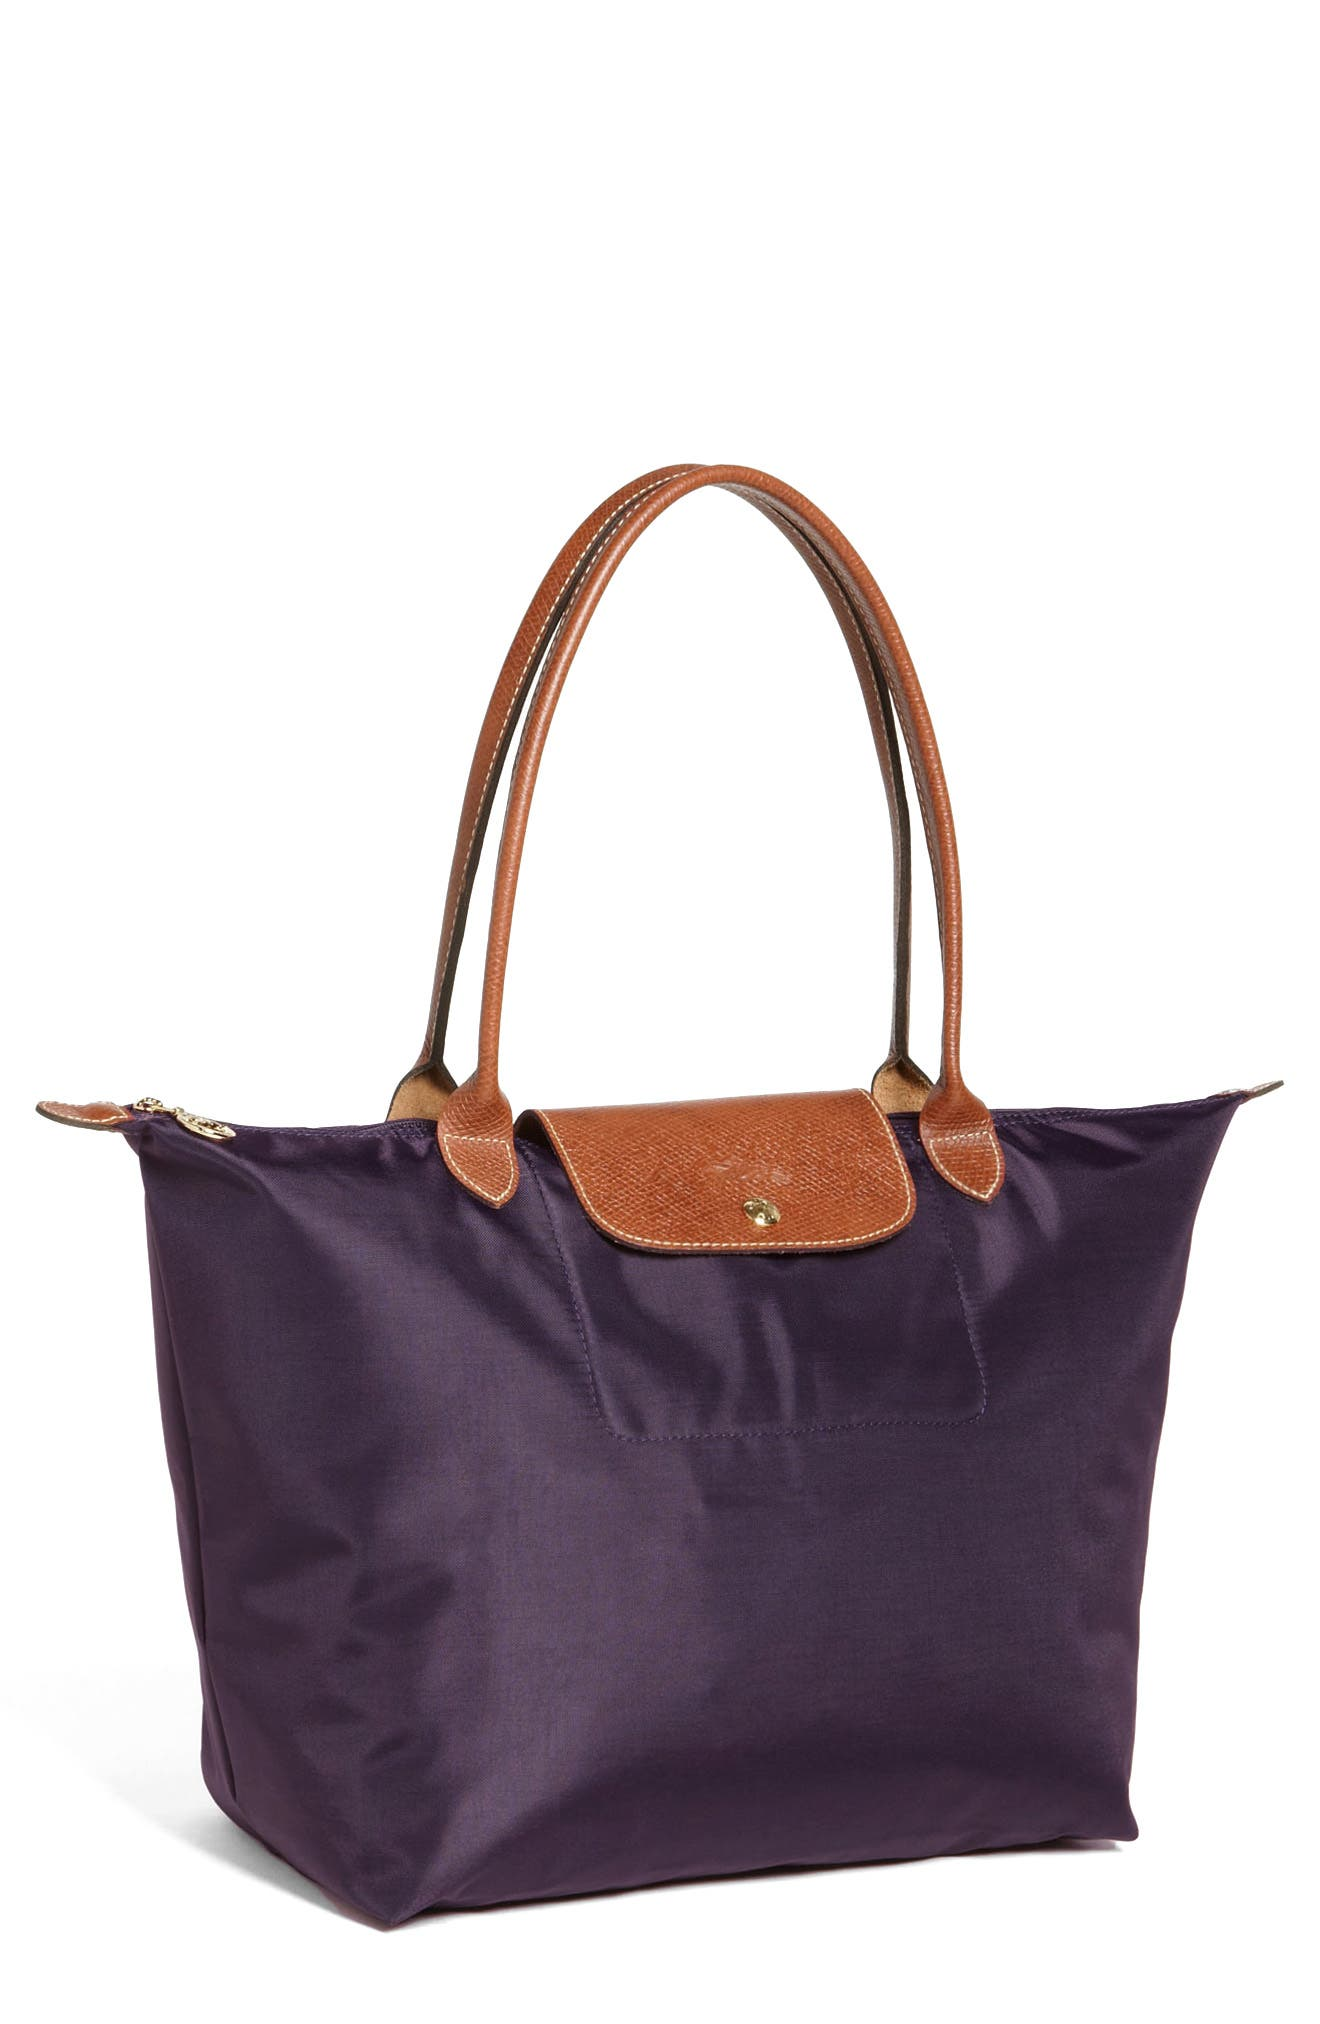 'Large Le Pliage' Tote,                             Main thumbnail 1, color,                             BILBERRY